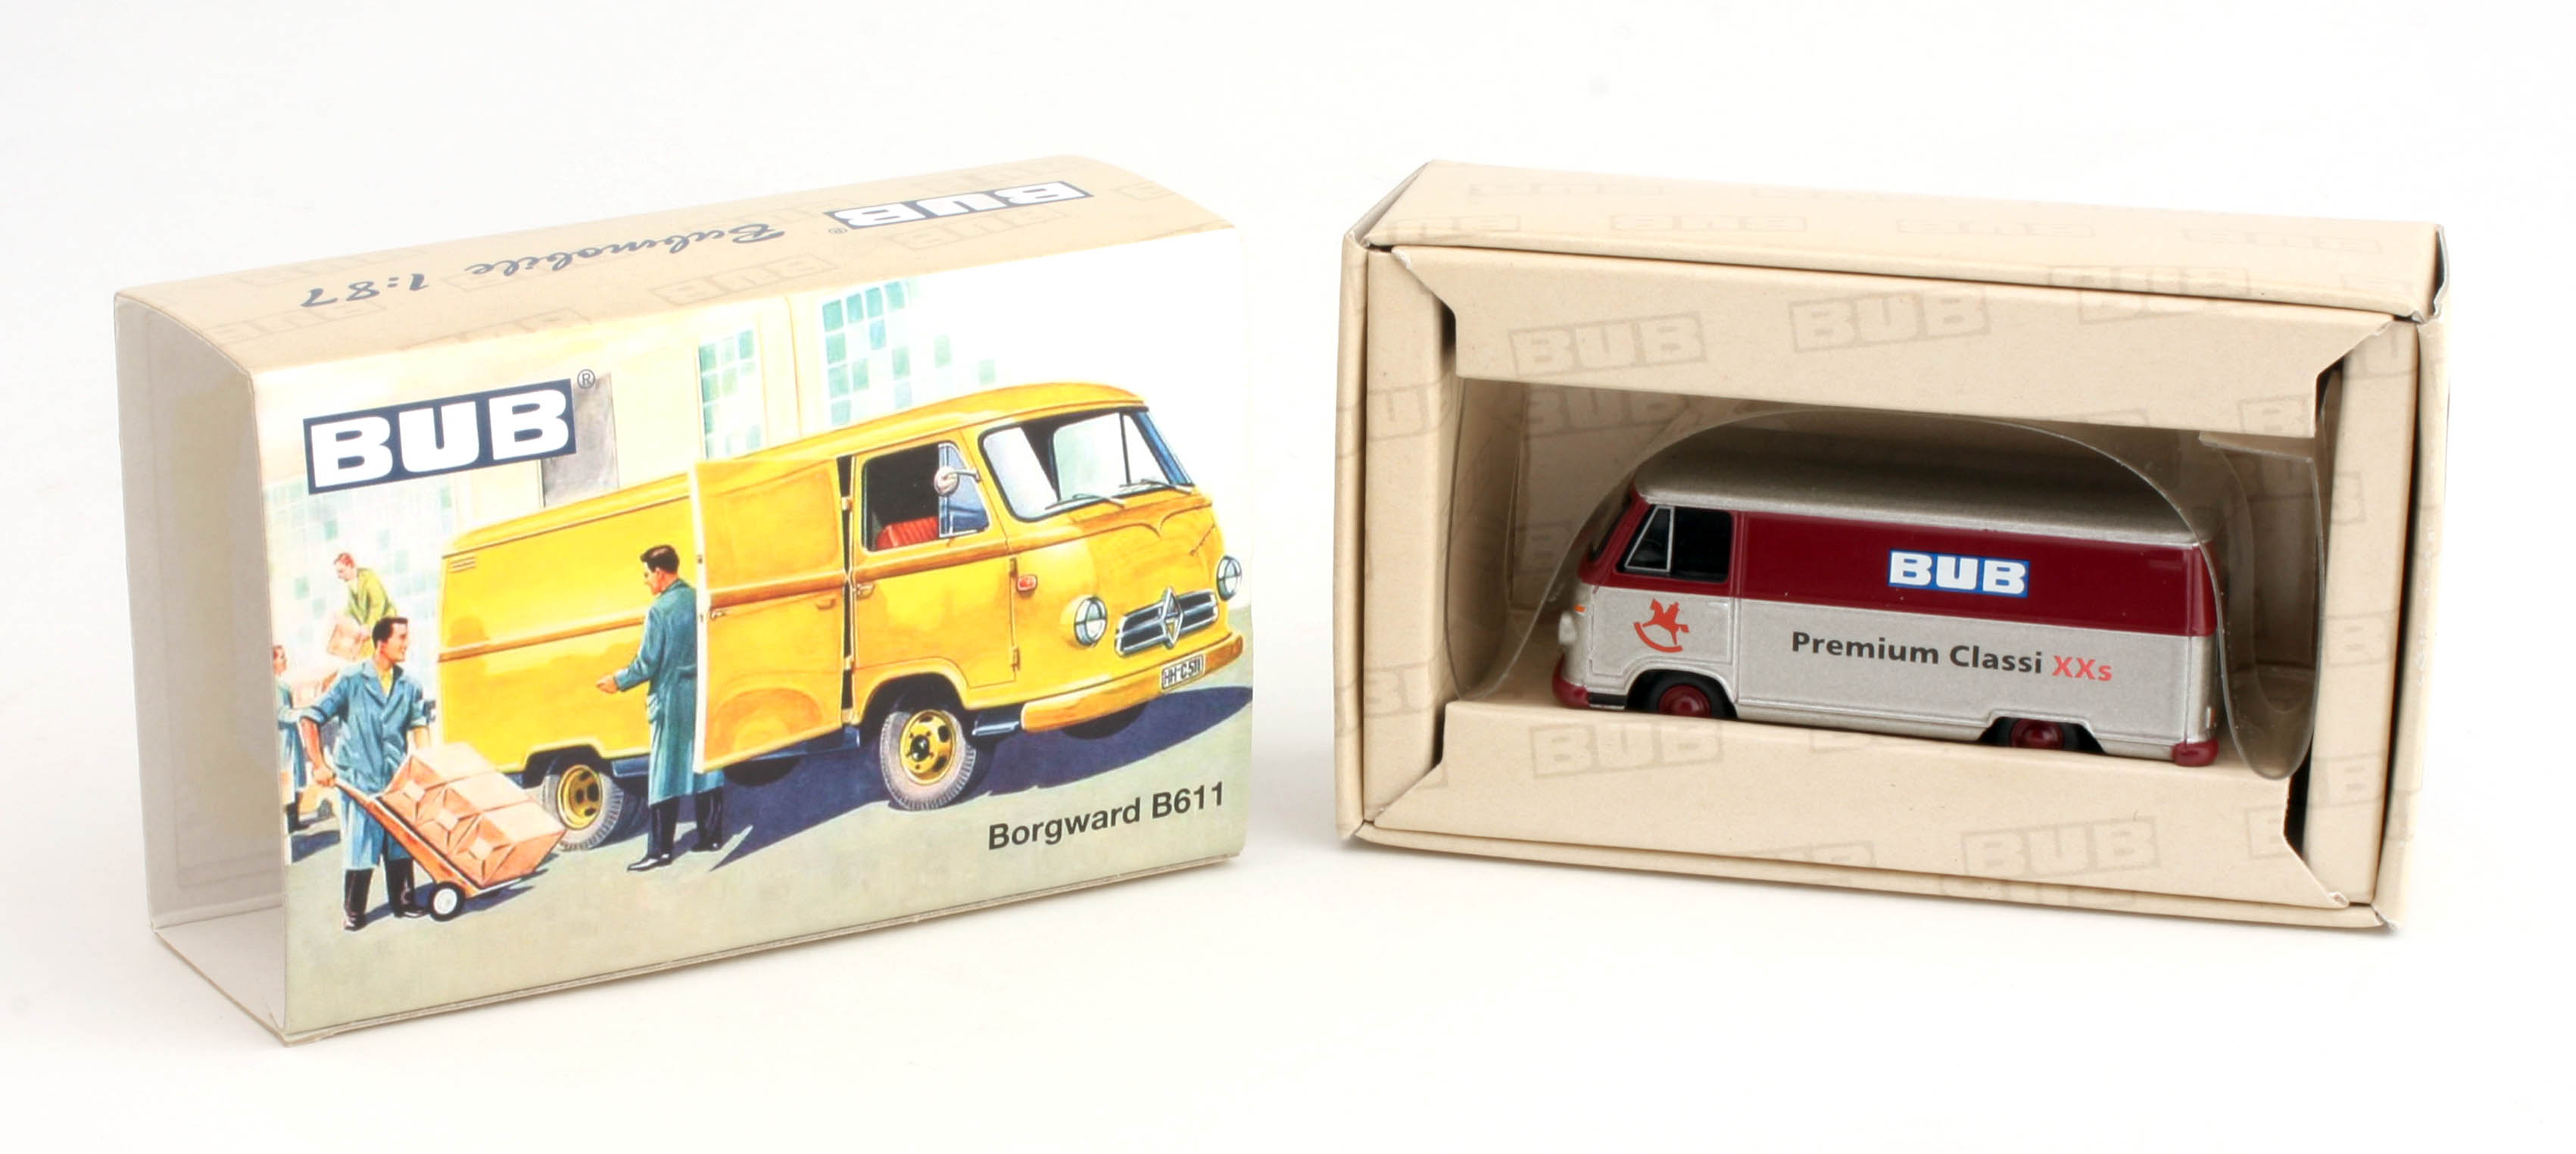 1.87 Bub Diecast Model Car - B611 - Borward Delivery Van - 2012 Germany Toyfair - Promo Model